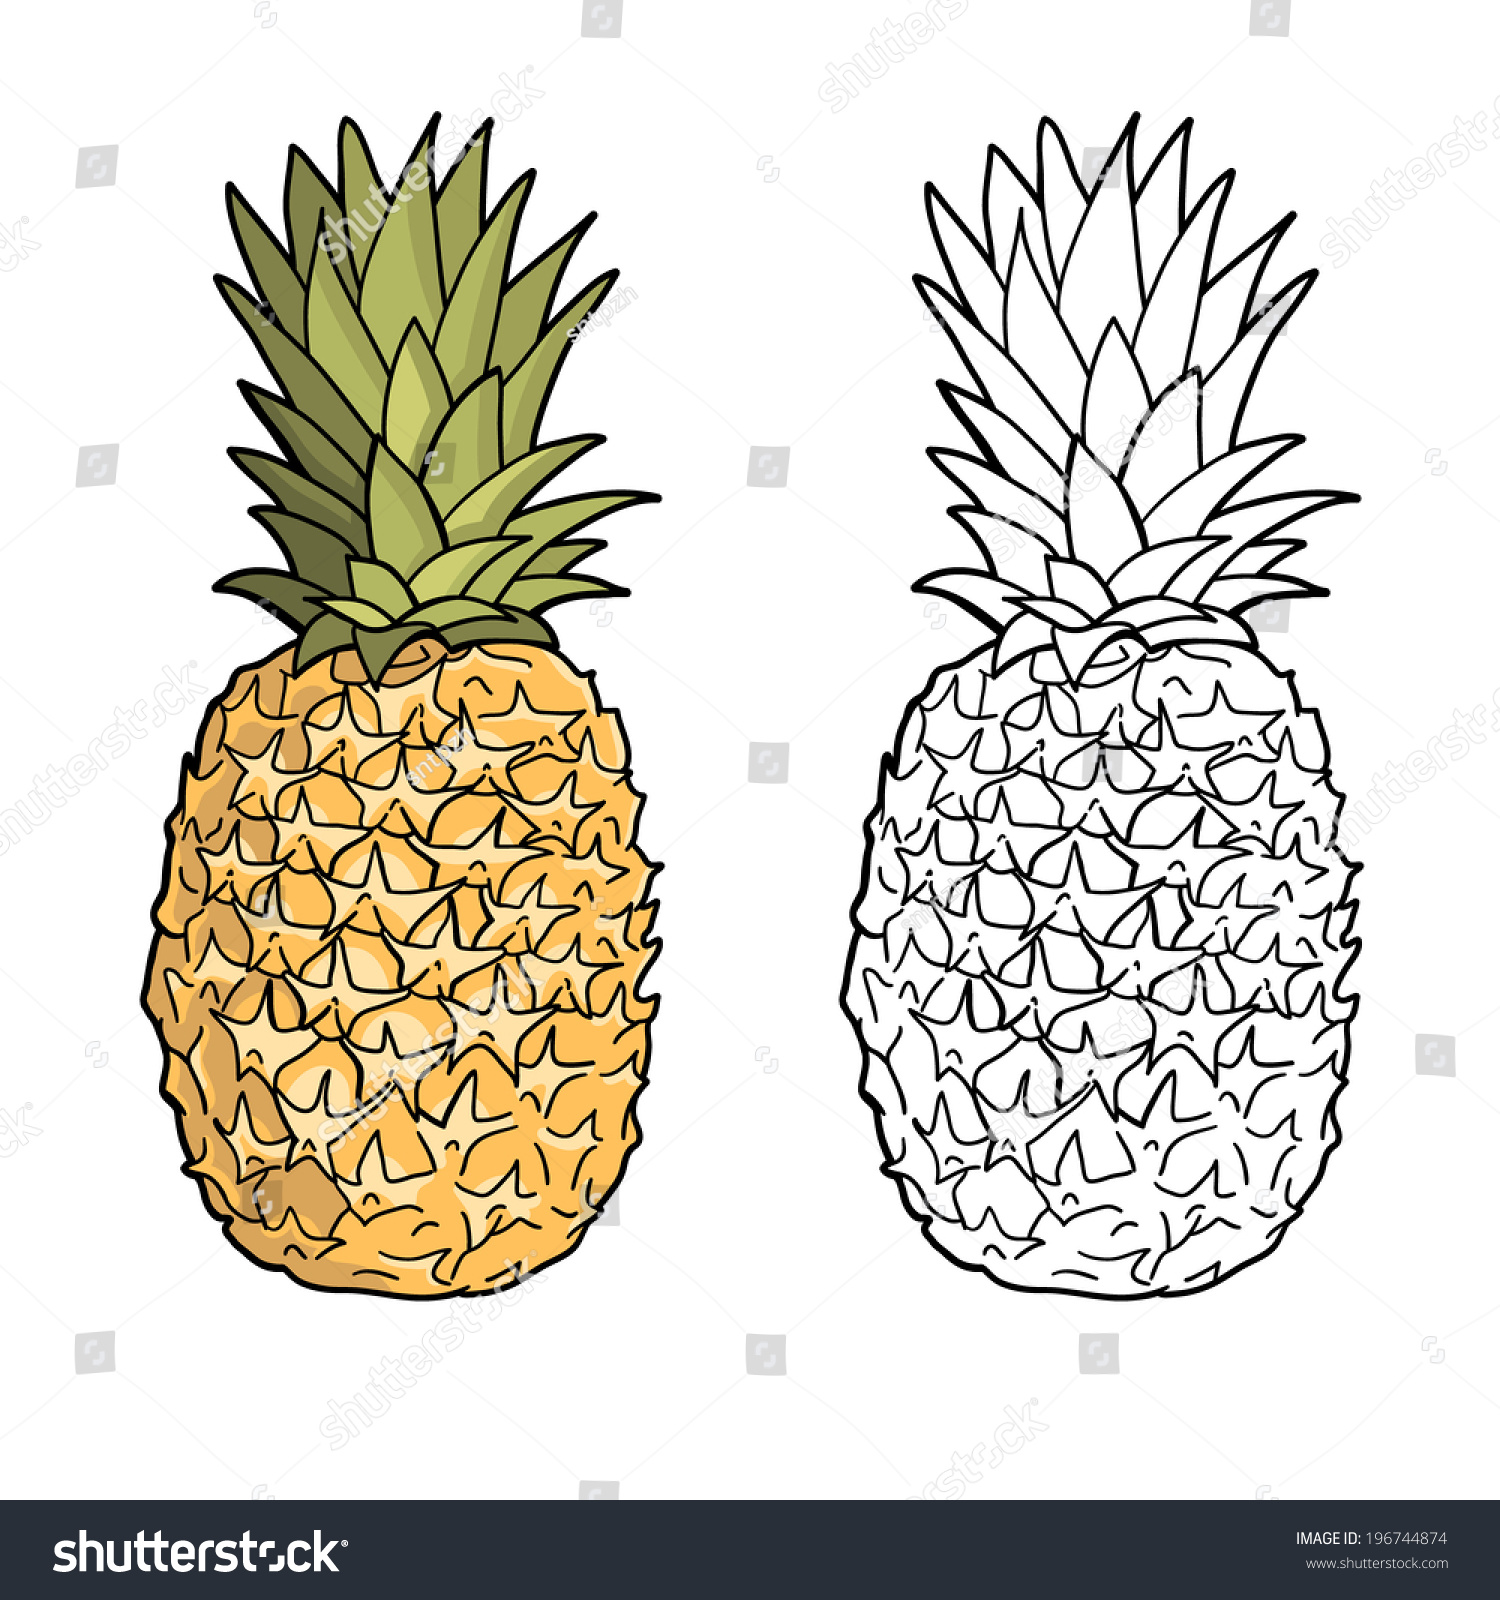 Pineapple With Sunglasses Tumblr Black Pineapple Drawing Pictures To Pin On Pinterest